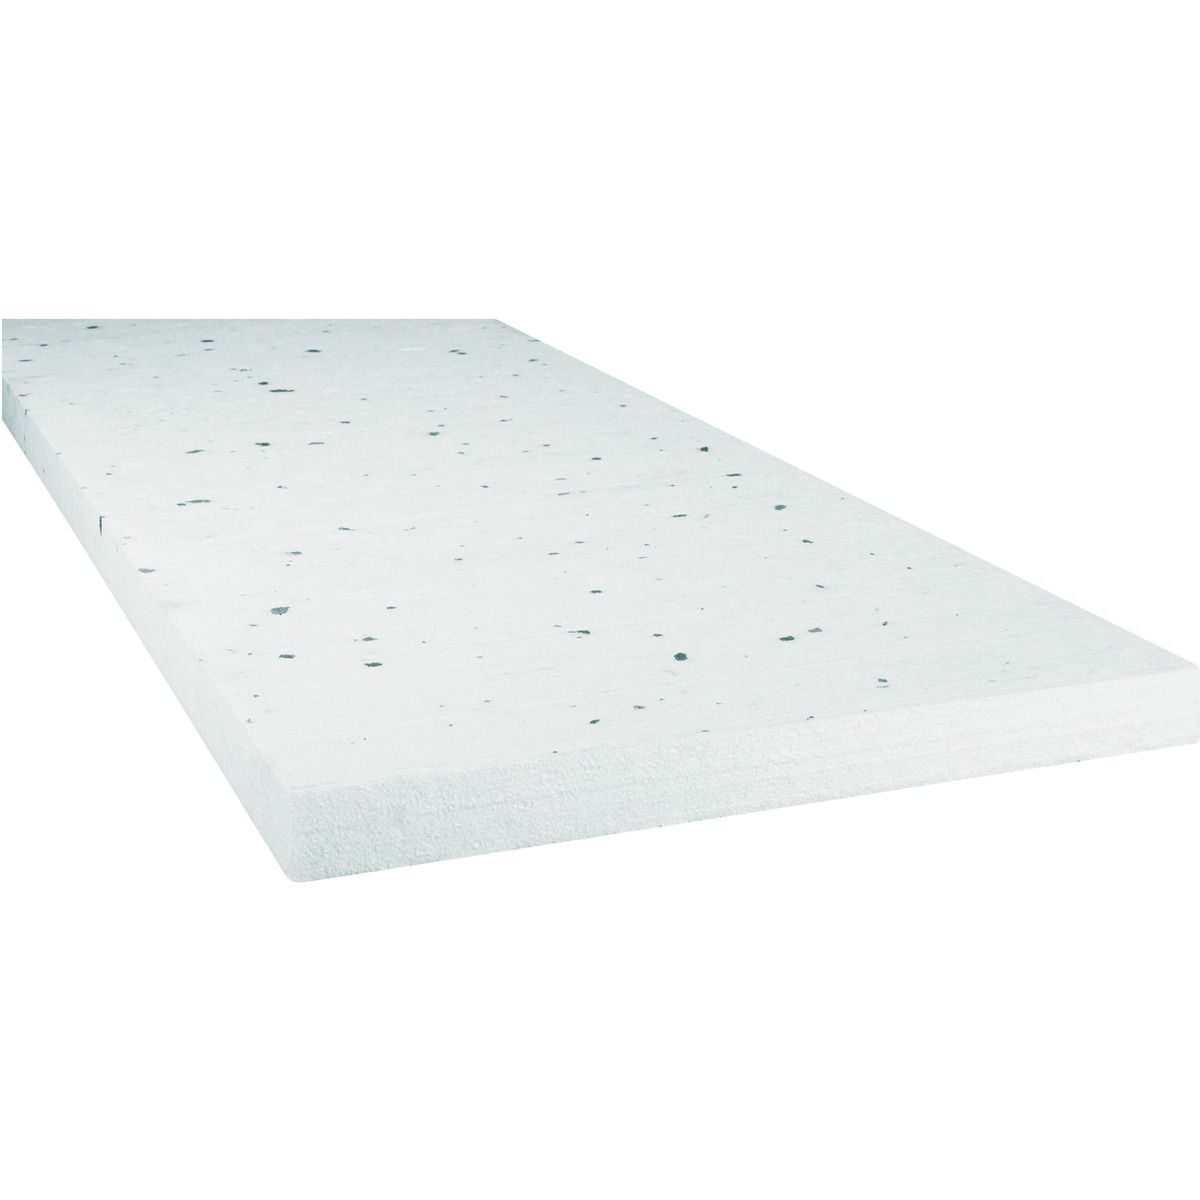 Compare prices for Kay Metzeler General Purpose Polystyrene EPS70 - 2400mm x 600mm x 25mm